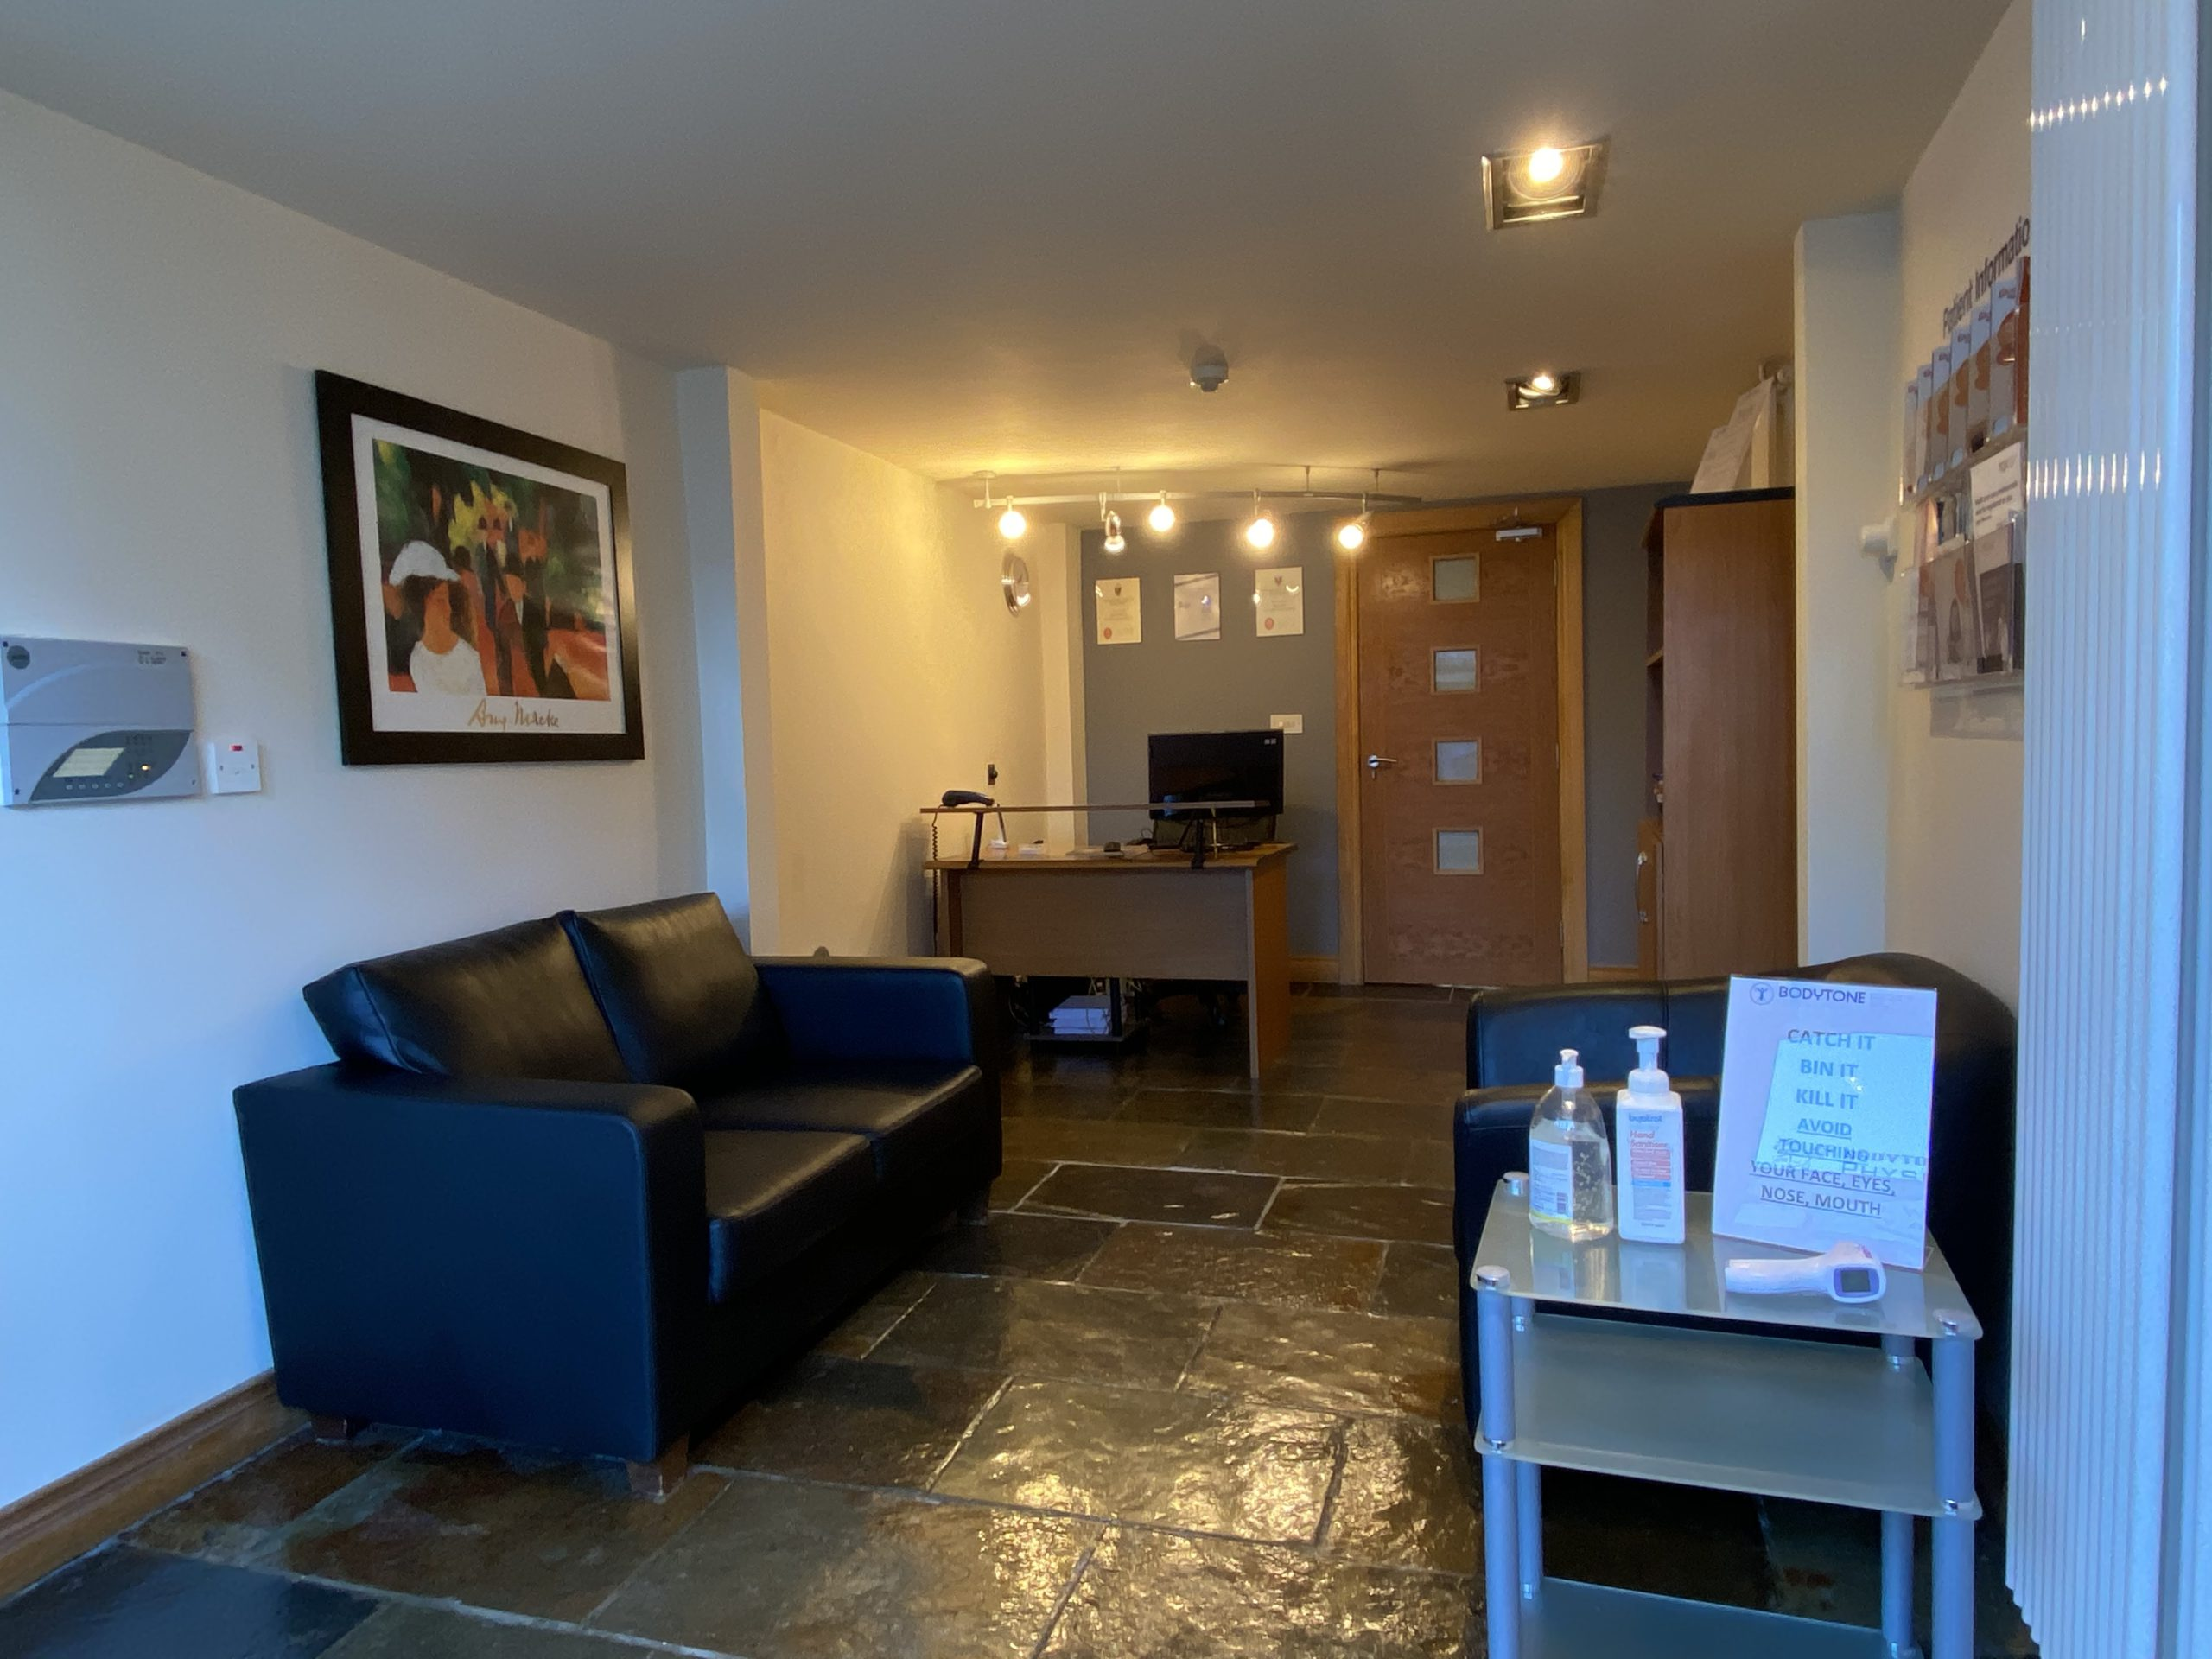 Bodytone physiotherapy reception area close up